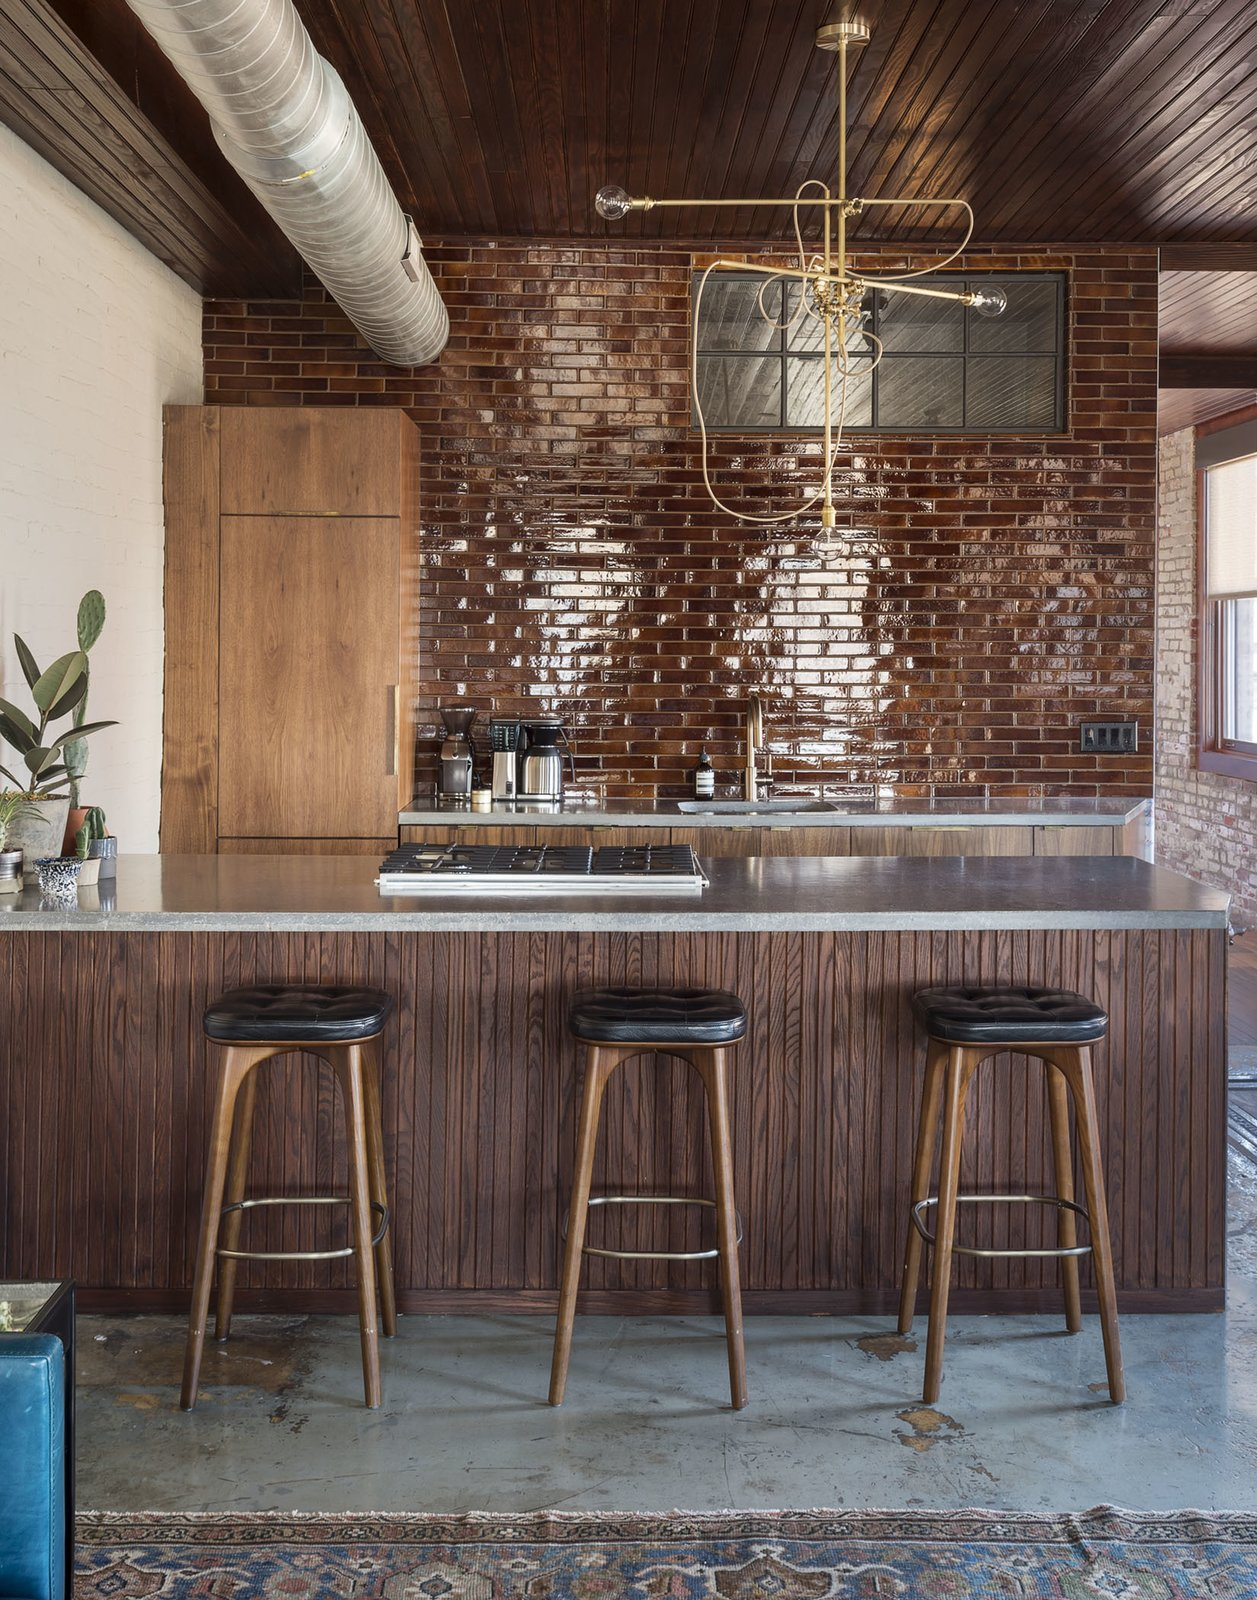 Tagged: Kitchen, Granite Counter, Wood Cabinet, Concrete Floor, Refrigerator, Ceramic Tile Backsplashe, and Pendant Lighting.  Mulherin's Hotel by Daniel Olsovsky